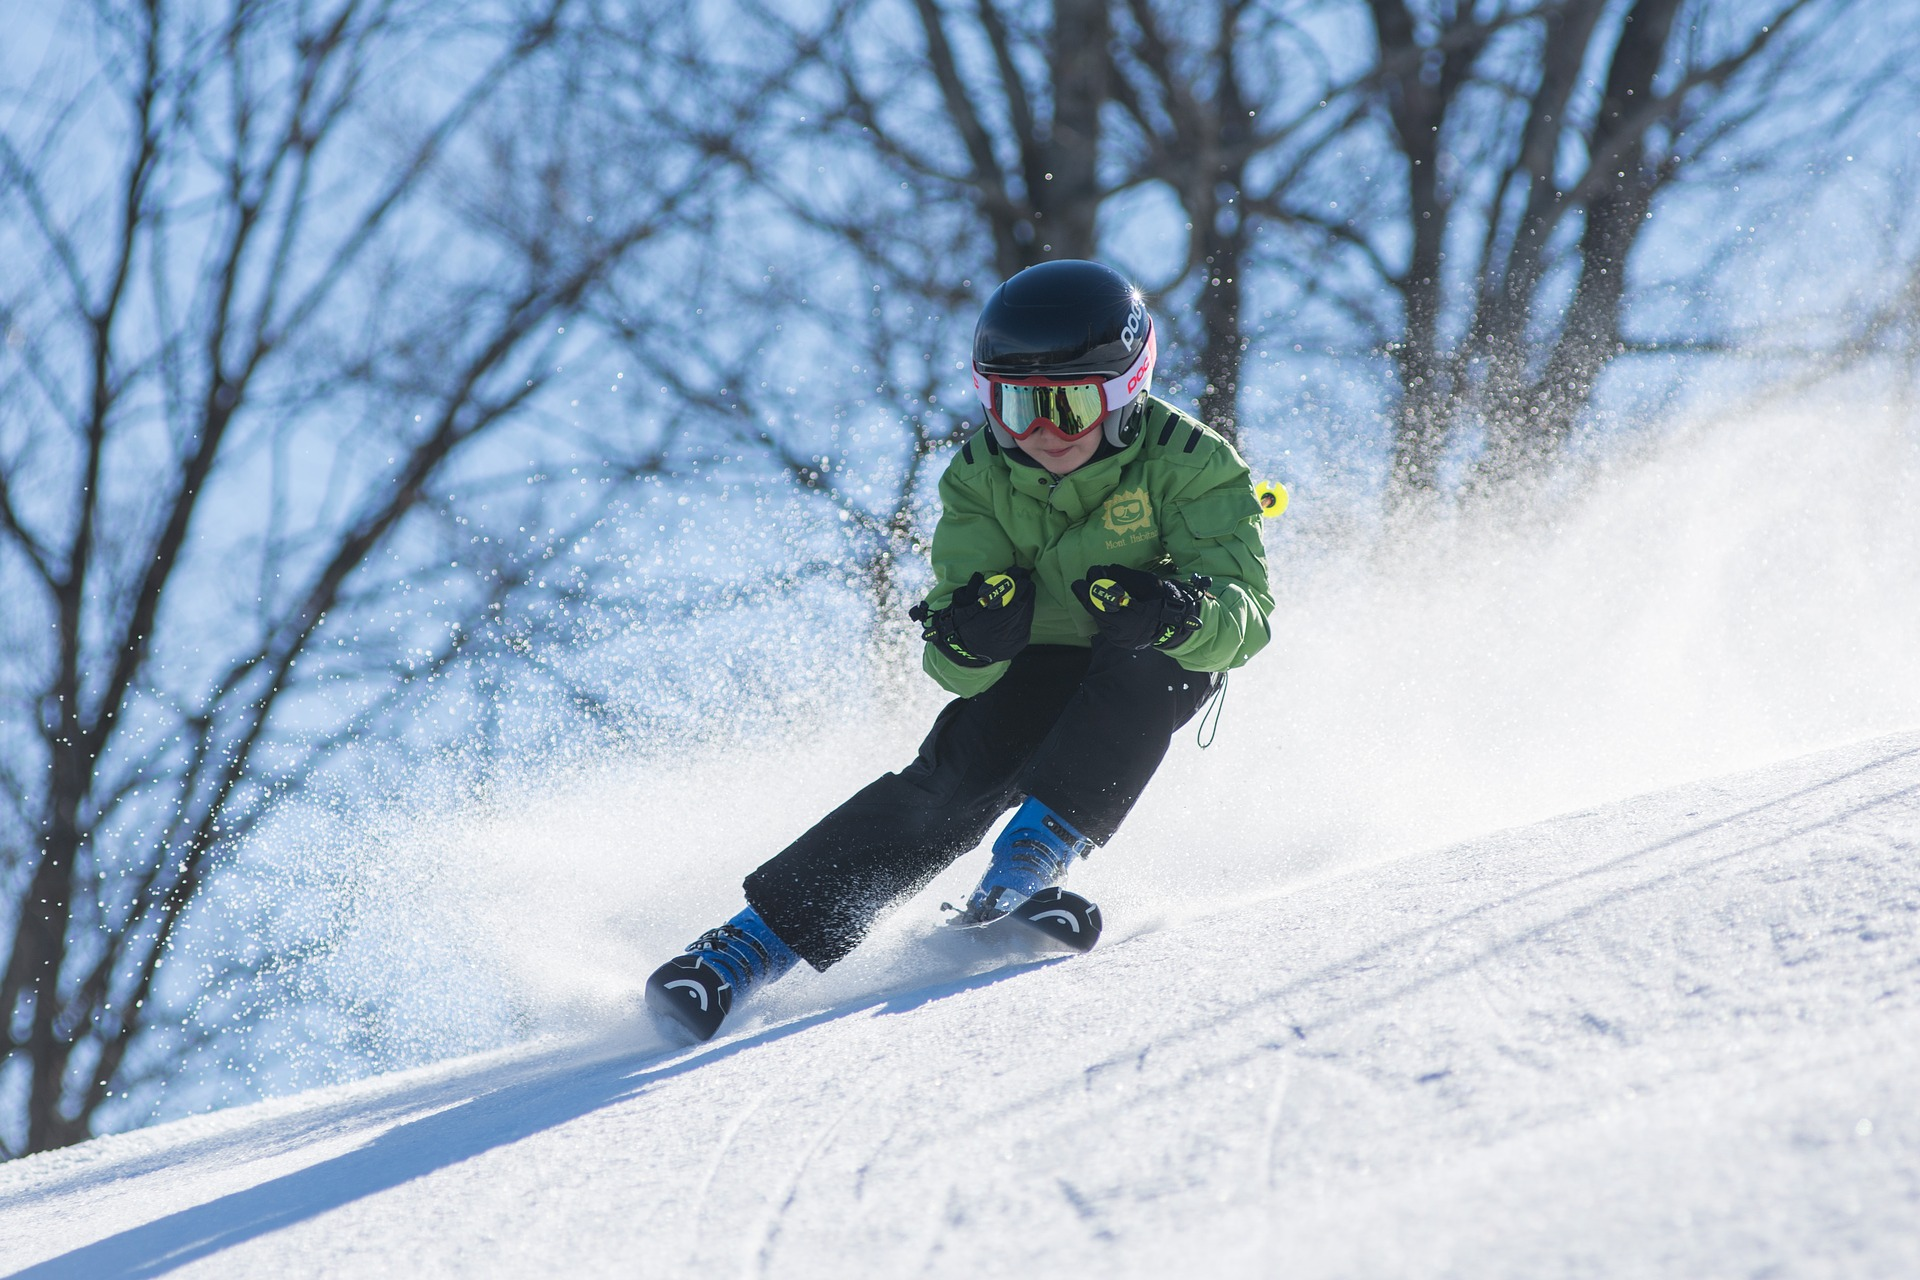 Downhill Skiing's: Know More About It